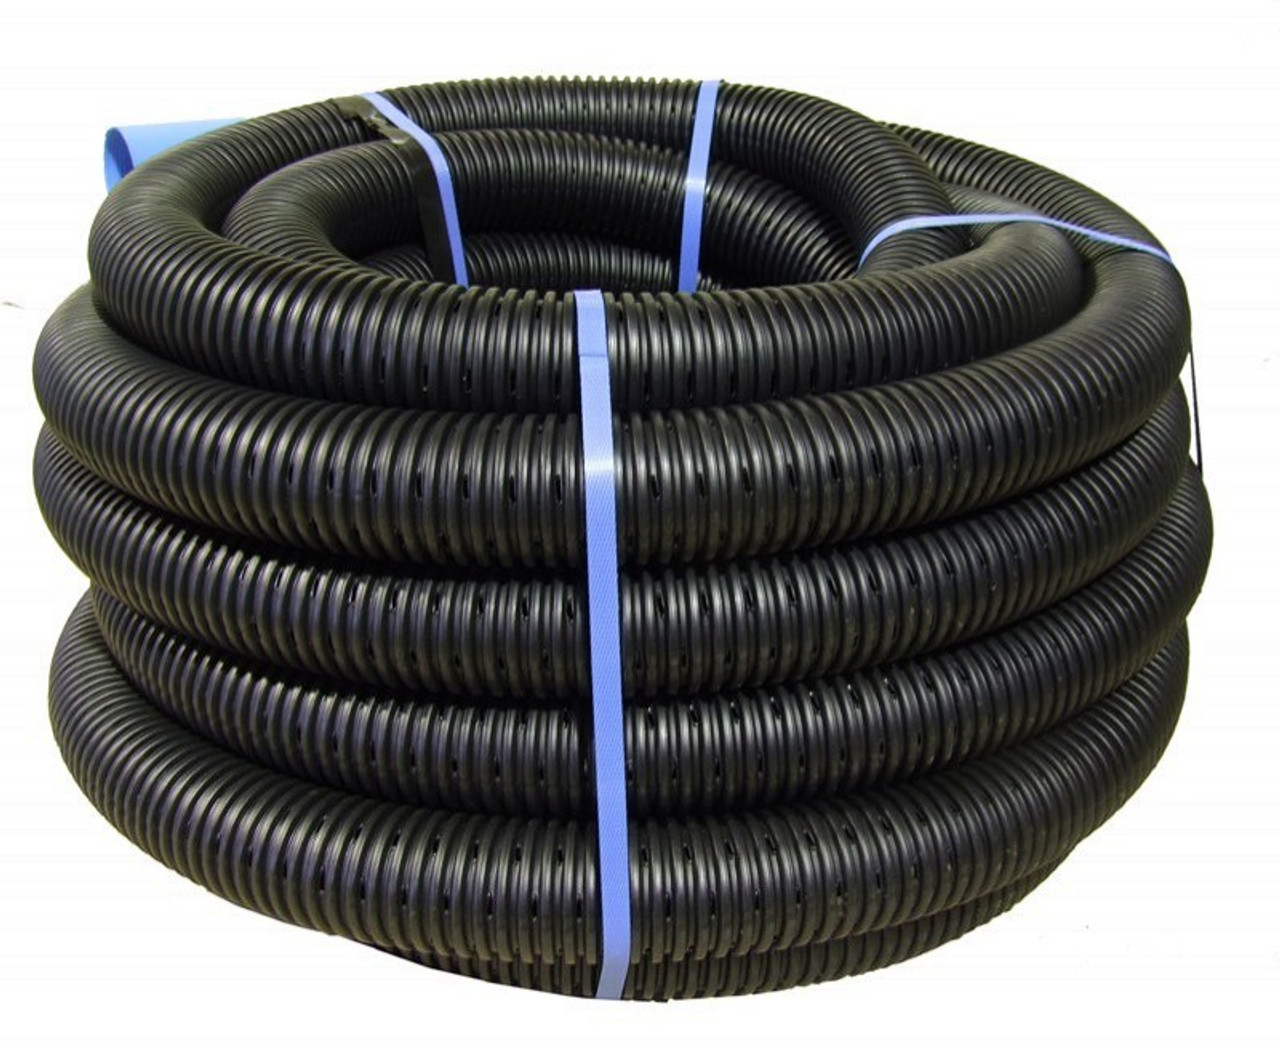 20m coil of 50mm Polydrain slotted pipe